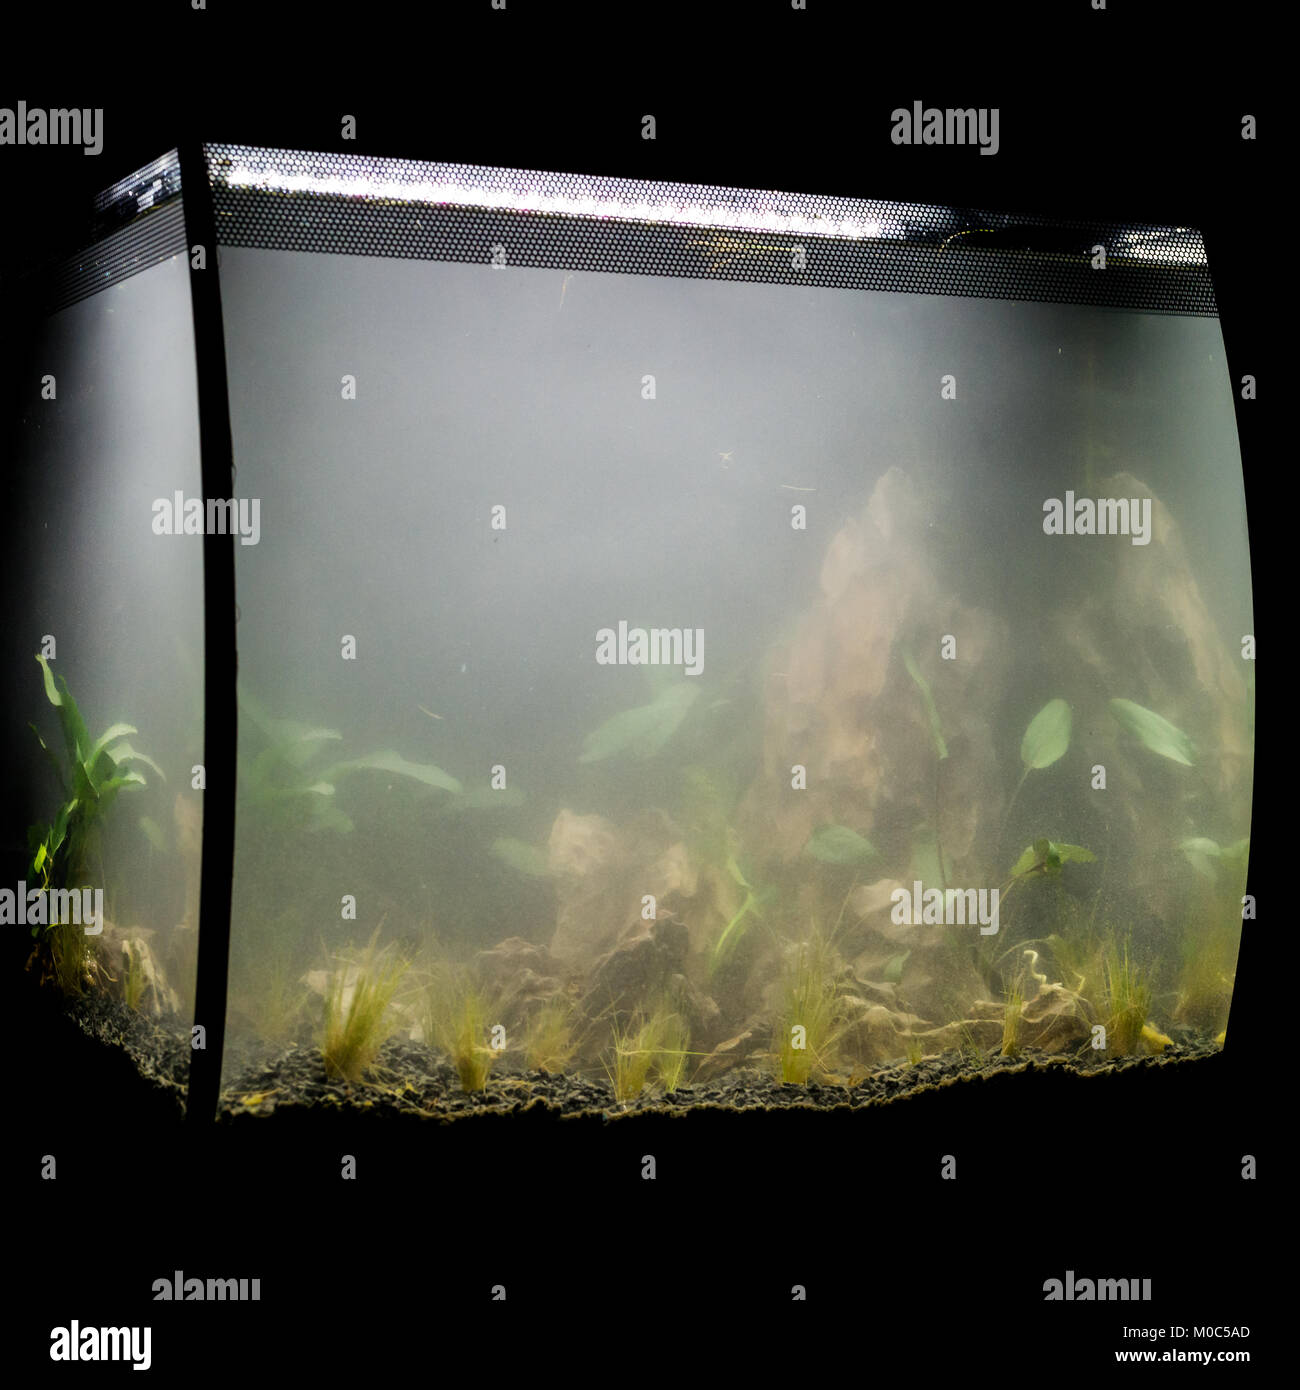 A Shot Of A Fluval Flex 57 Aquascape Showing The Foggy Water Just After  Planting